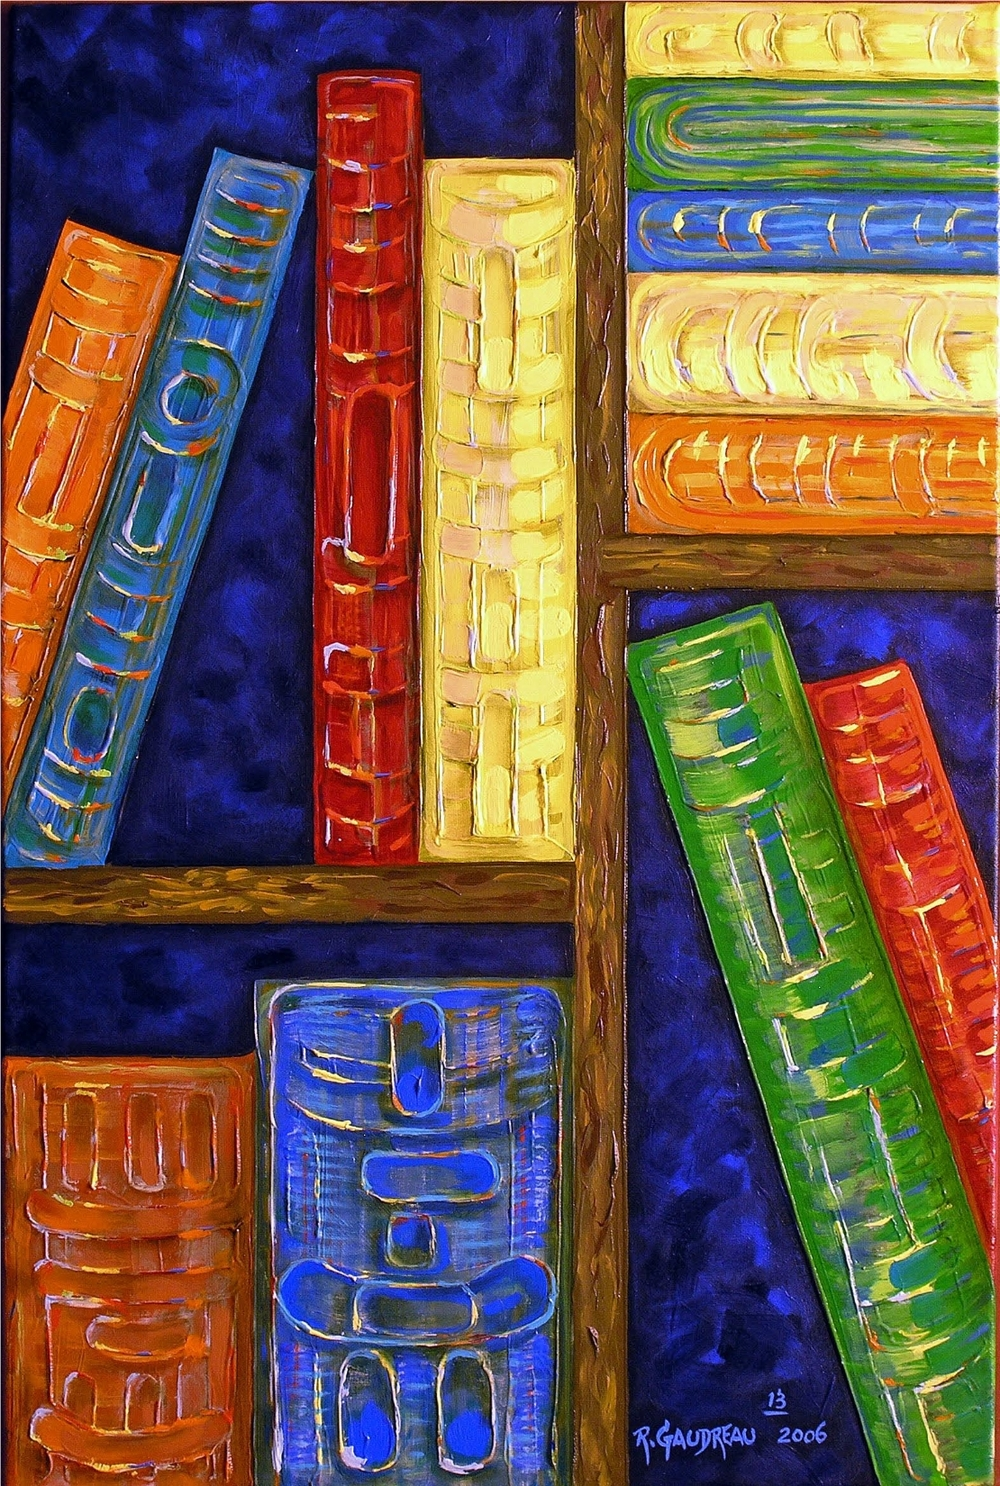 13  Books   2006 oil on canvas 36 x 24 inches